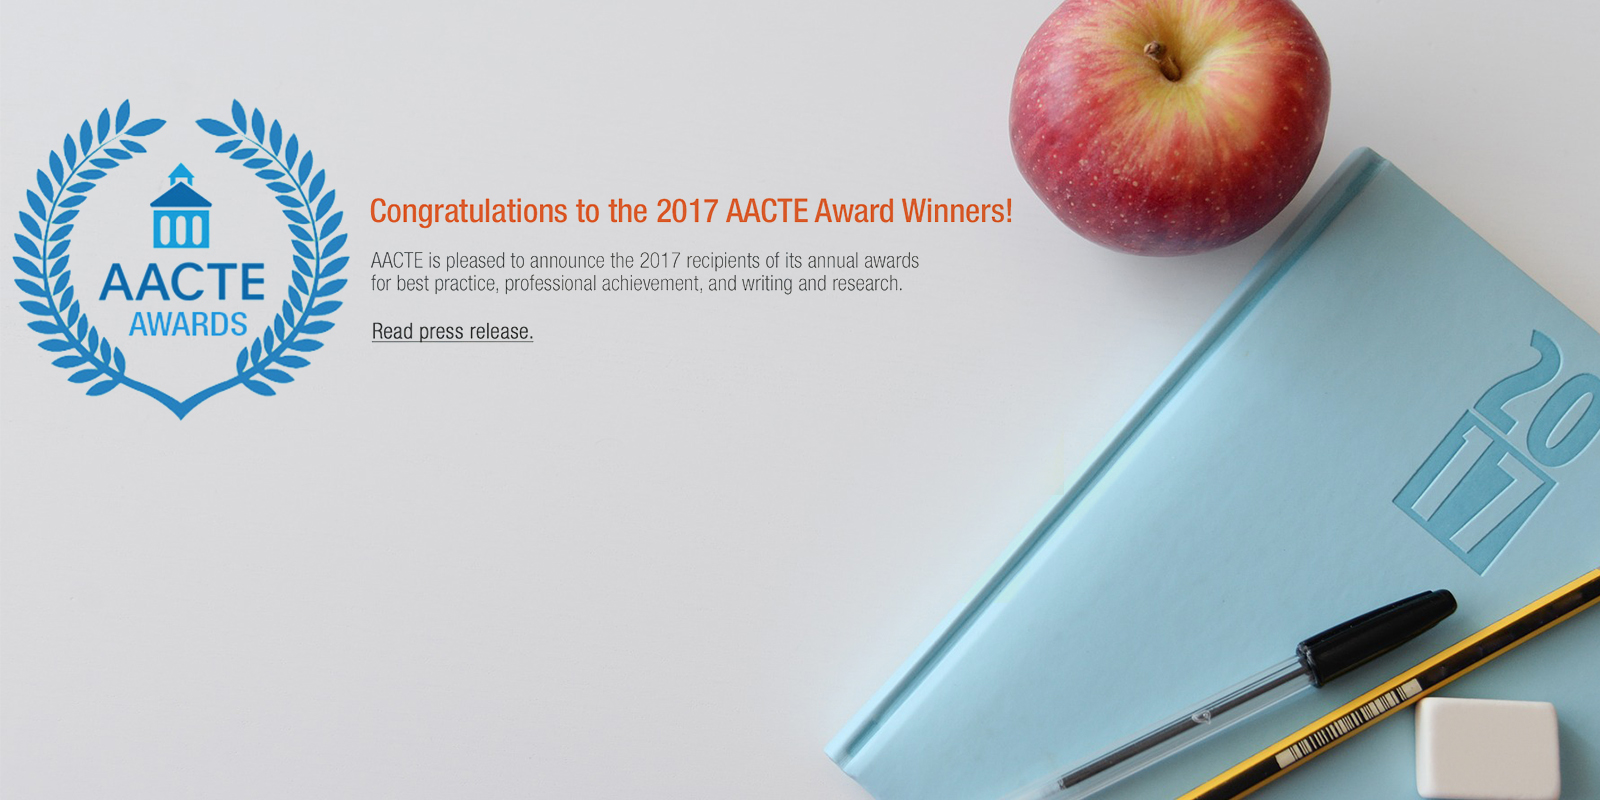 Congratulations to All AACTE Award Winners